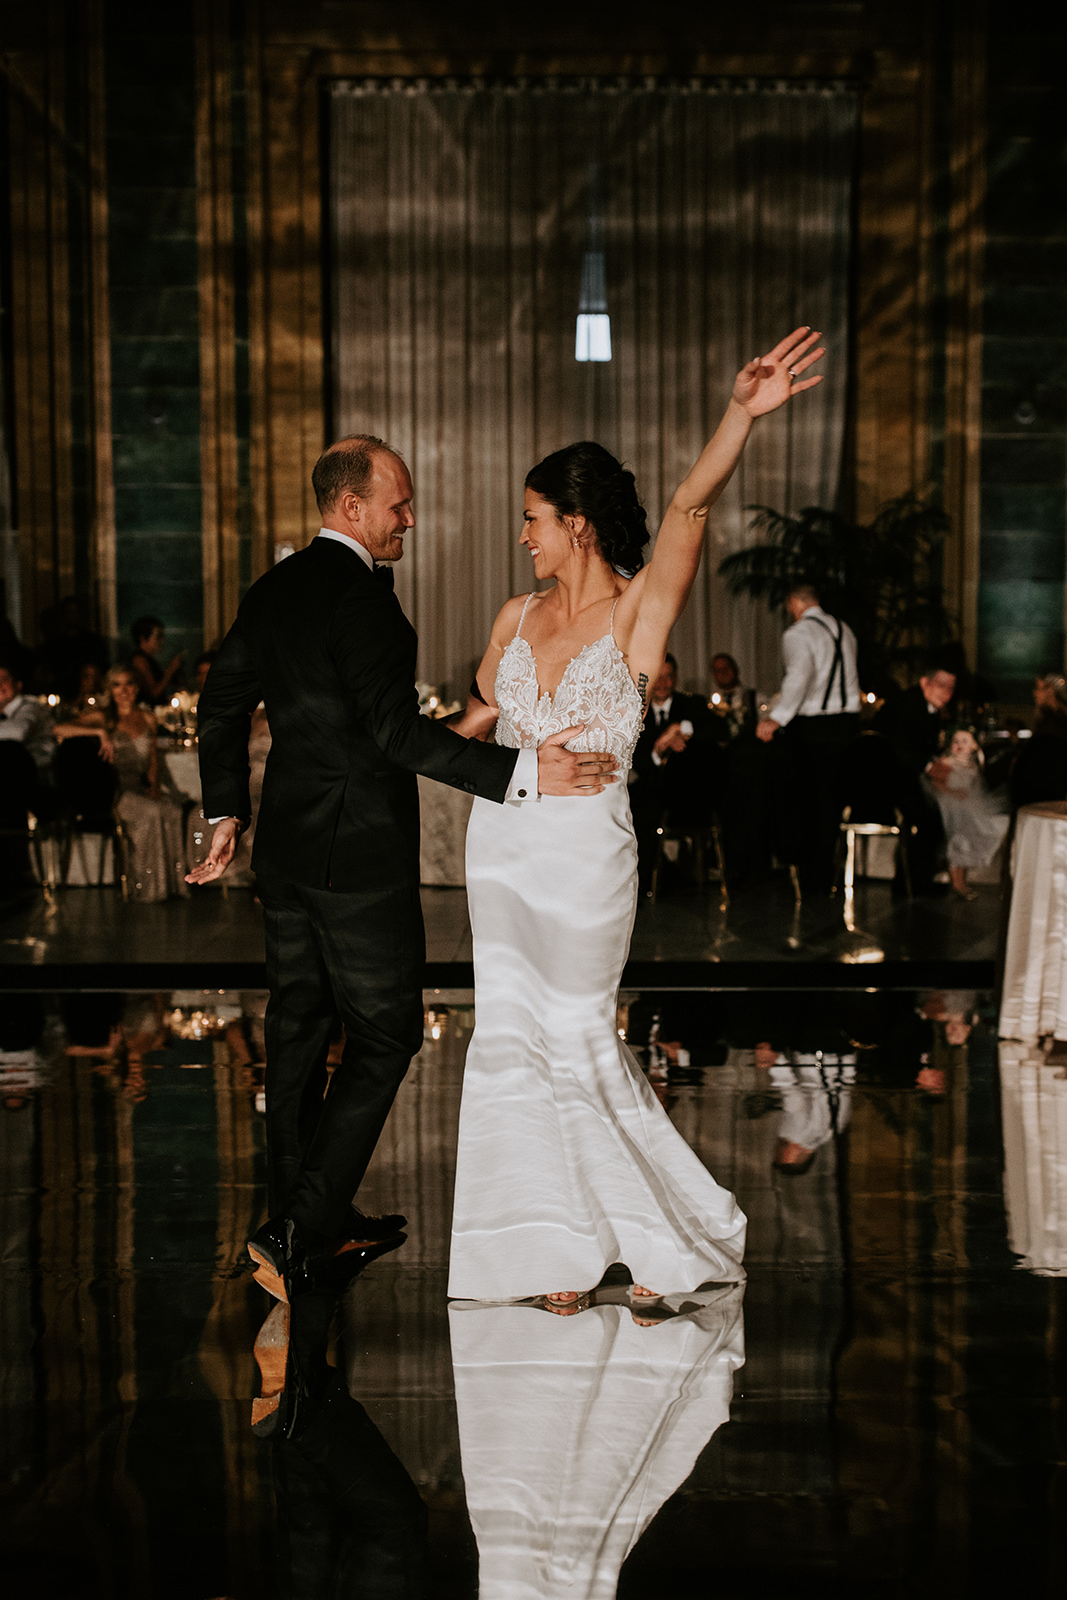 Pittsburghweddingphotography (1074 of 1503).jpg